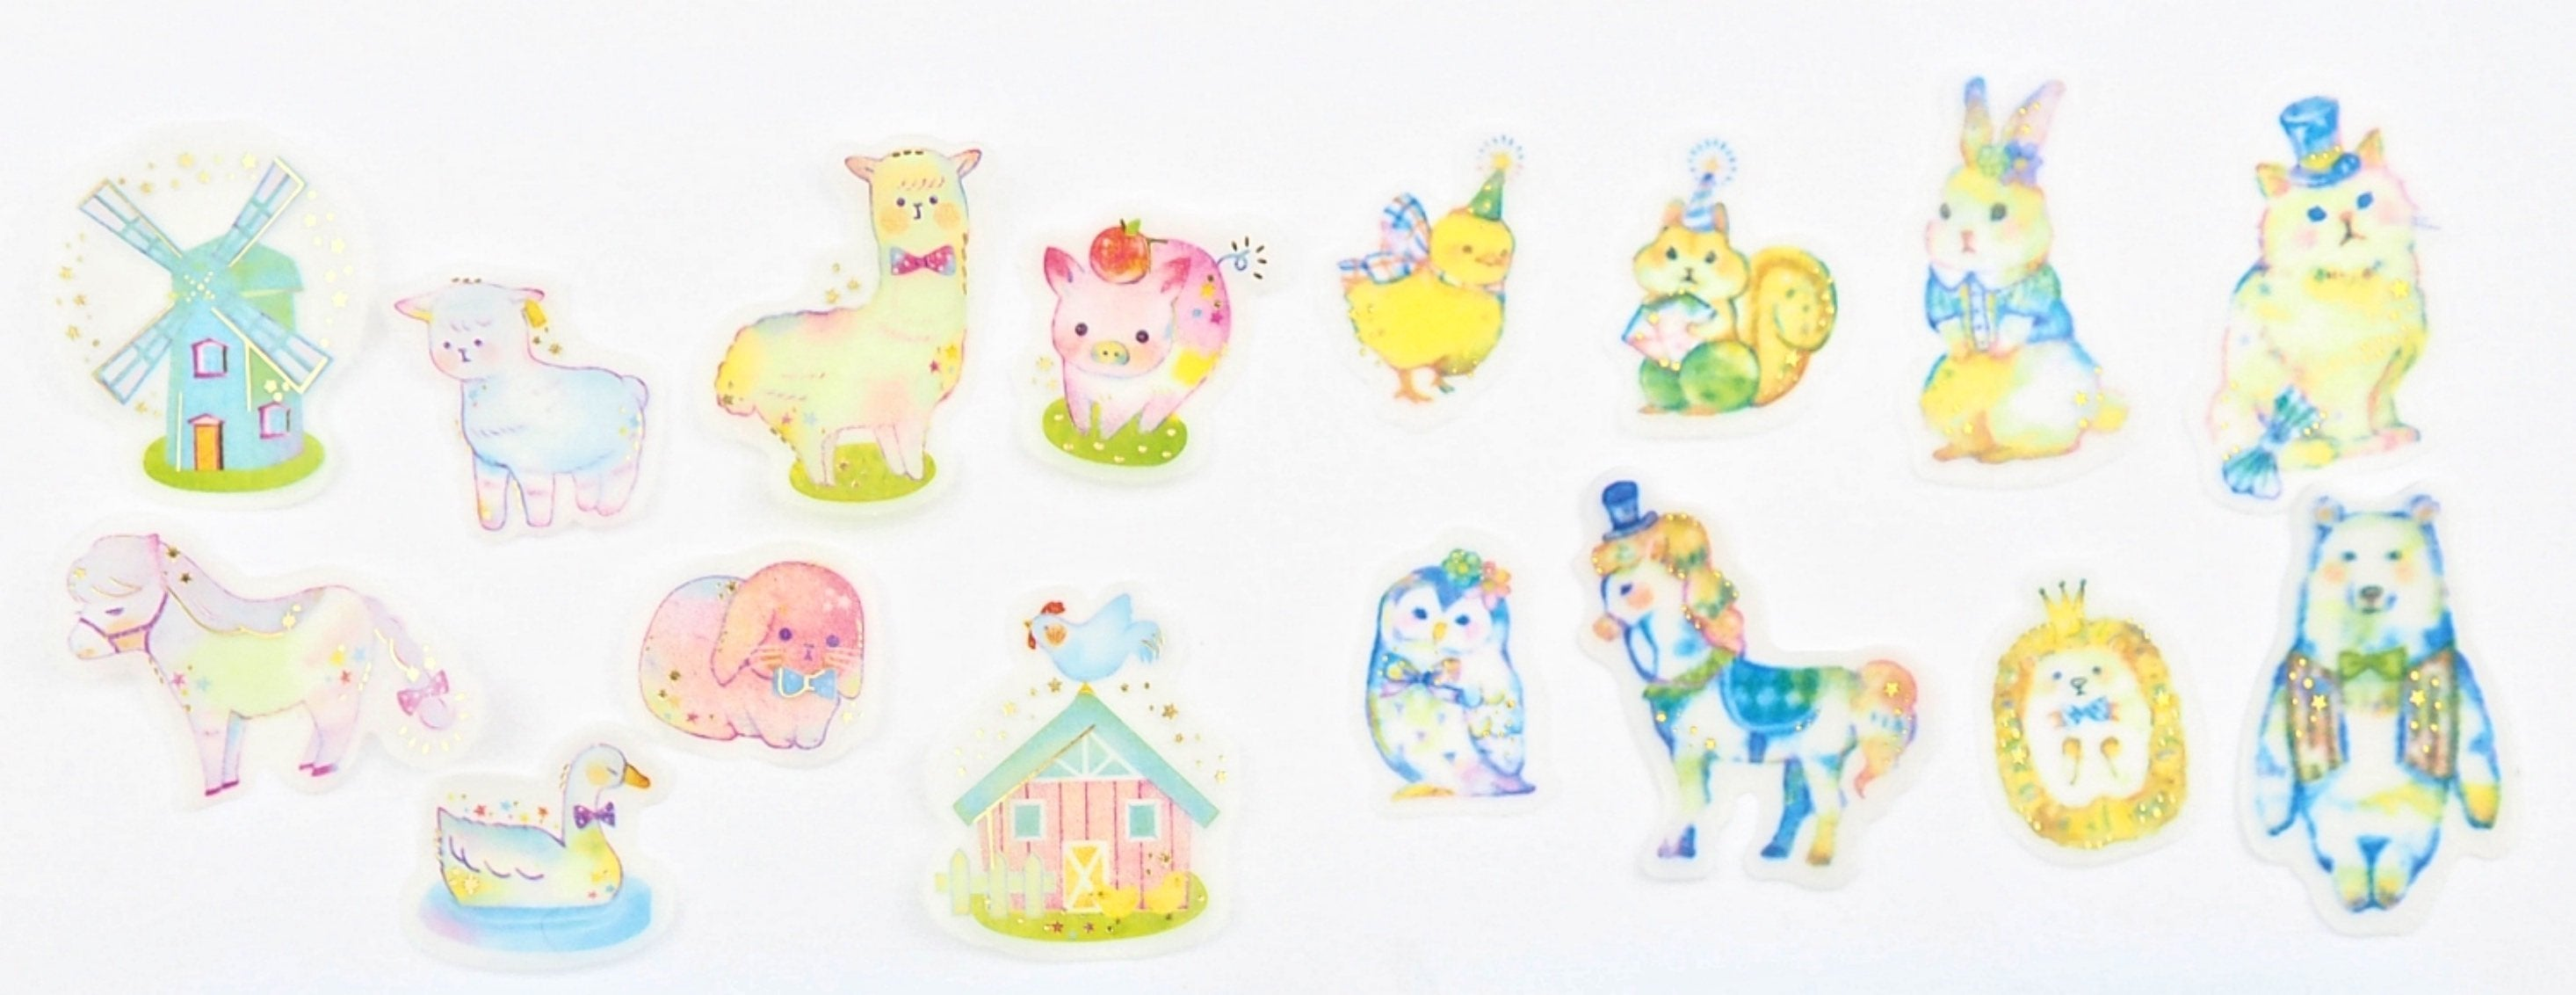 Party Animals sticker collection  -  from ThePinkRoomCo